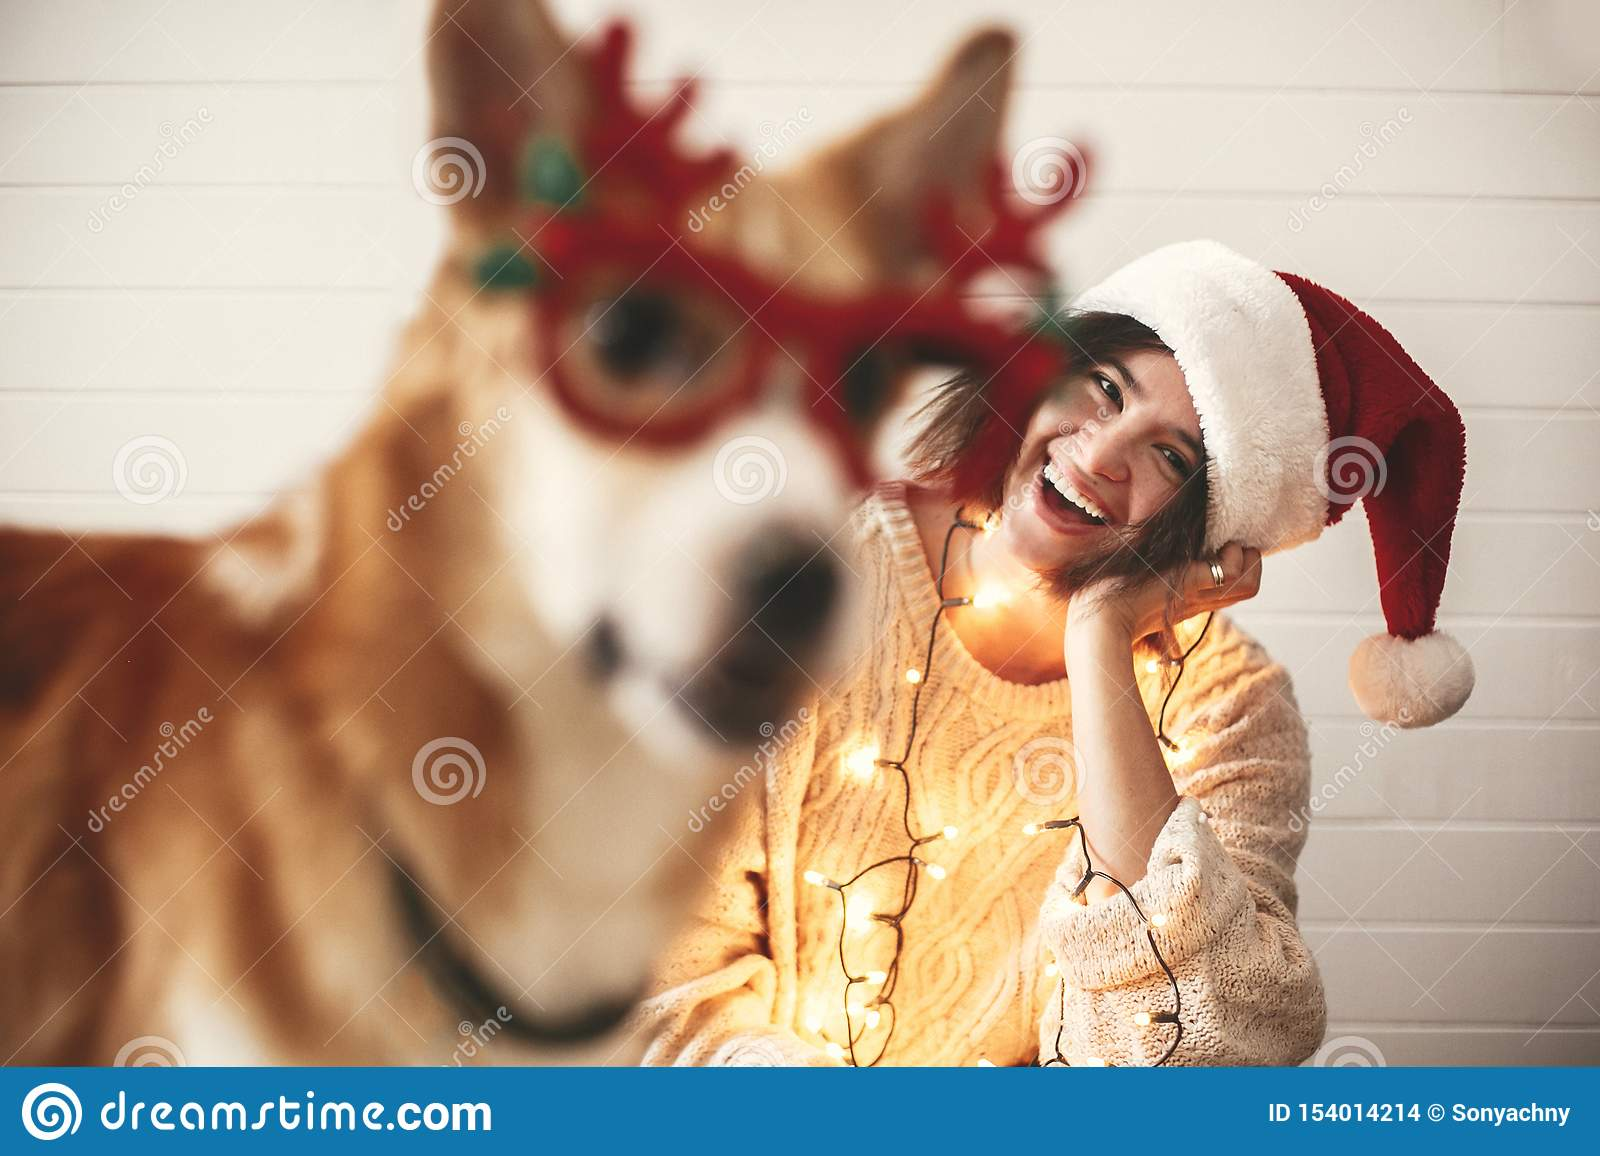 Stylish girl smiling in santa hat and christmas lights and looking at cute golden dog with funny emotions in festive reindeer